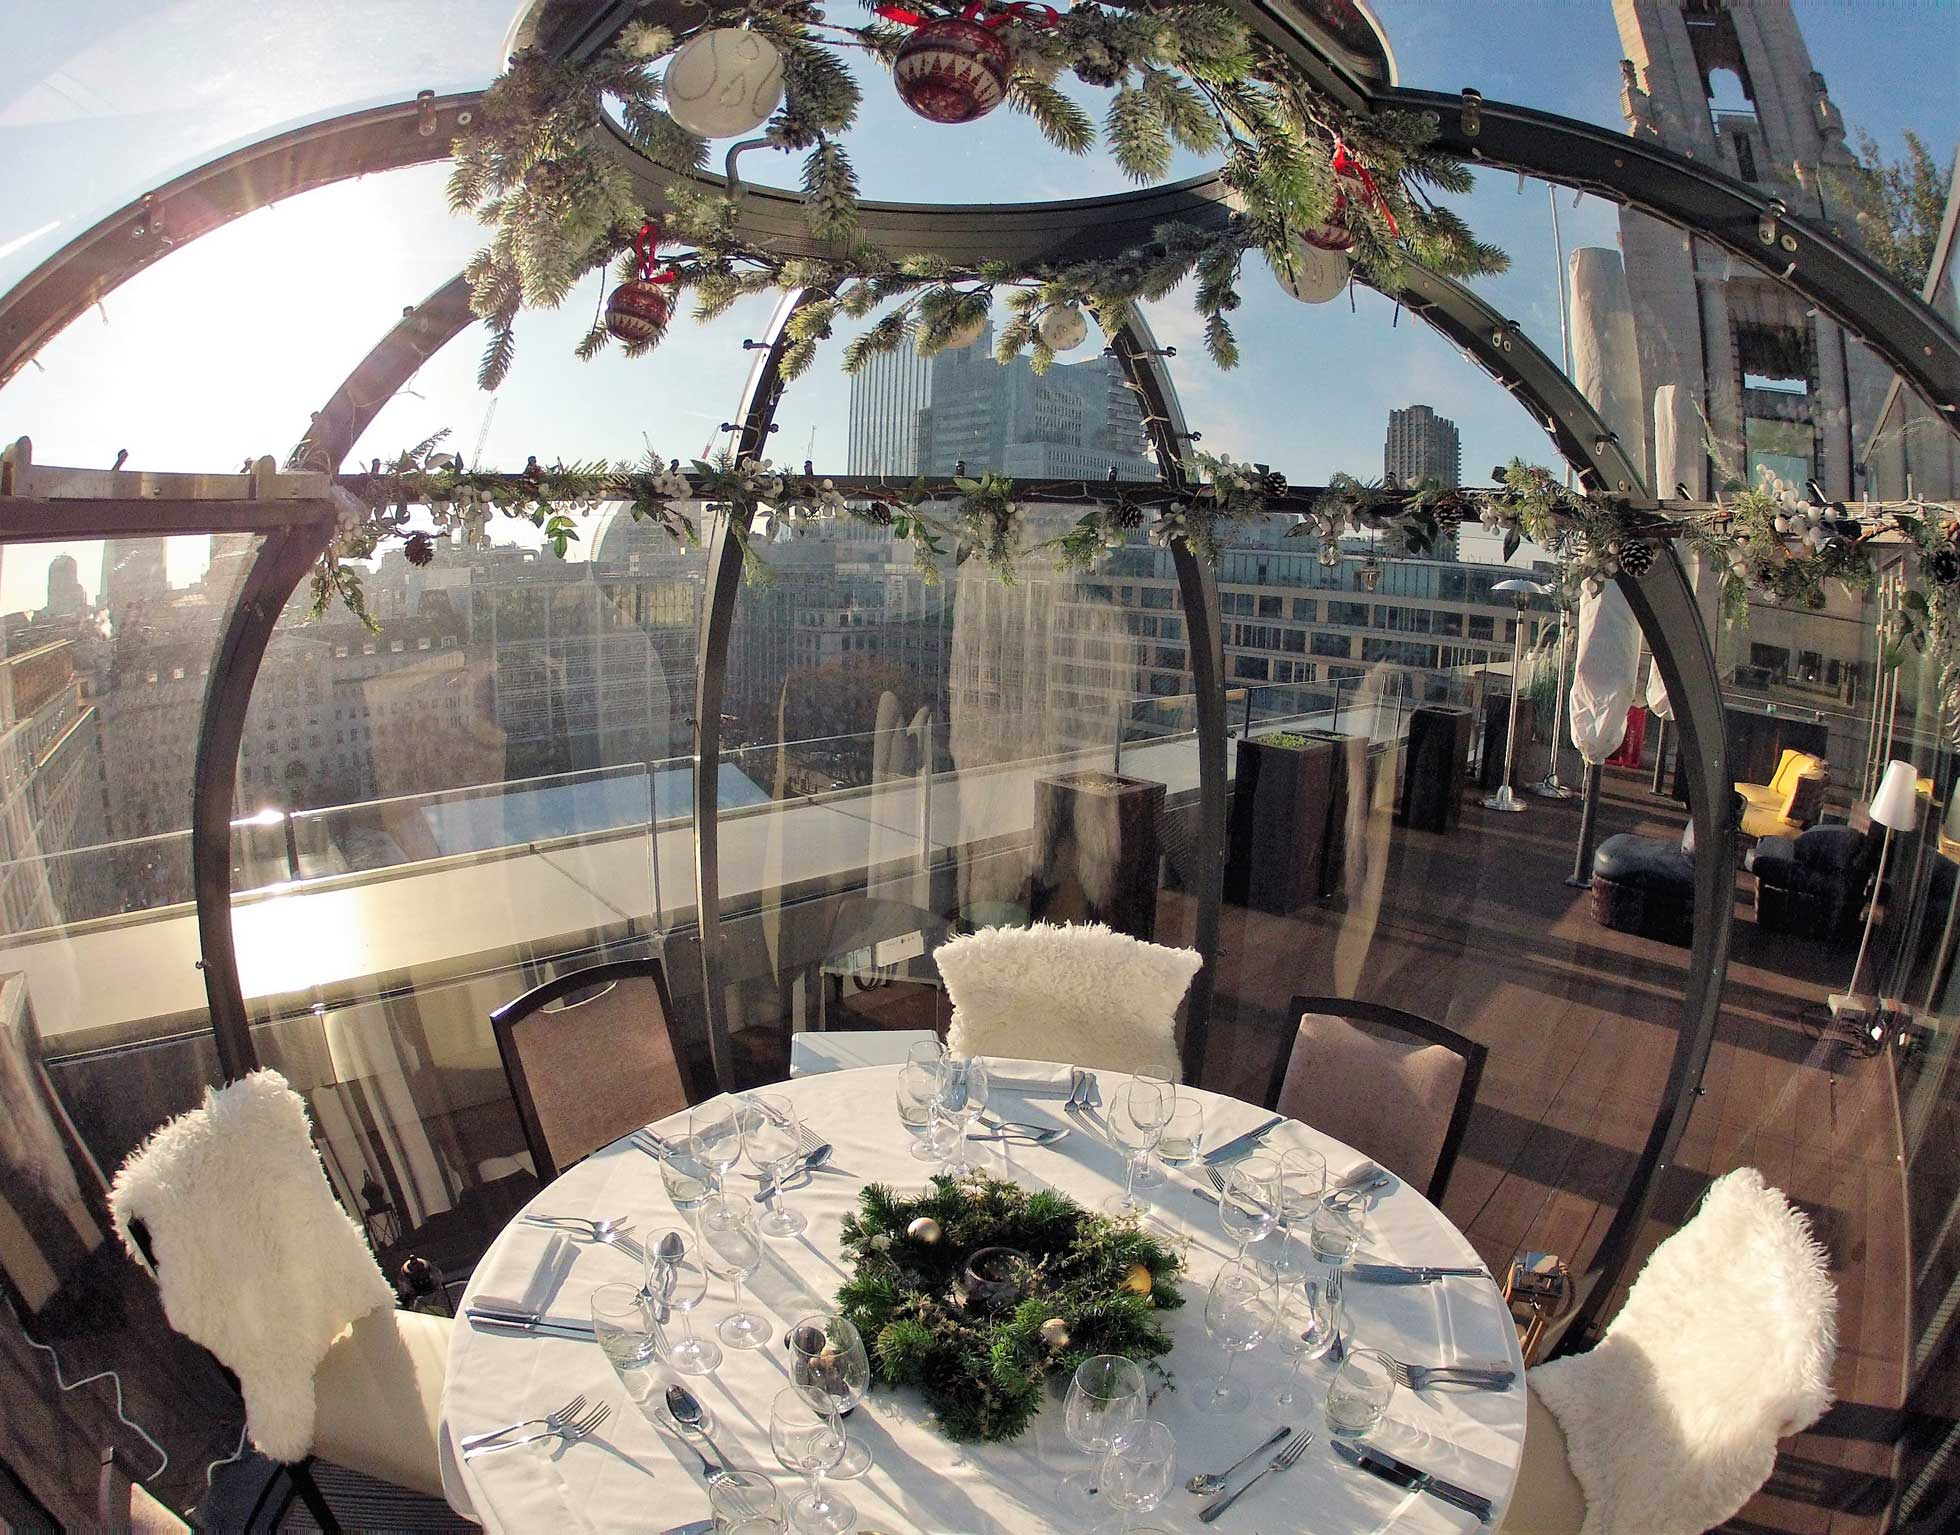 Interior shot from within a rooftop dining pod on a clear sunny day with cityscape